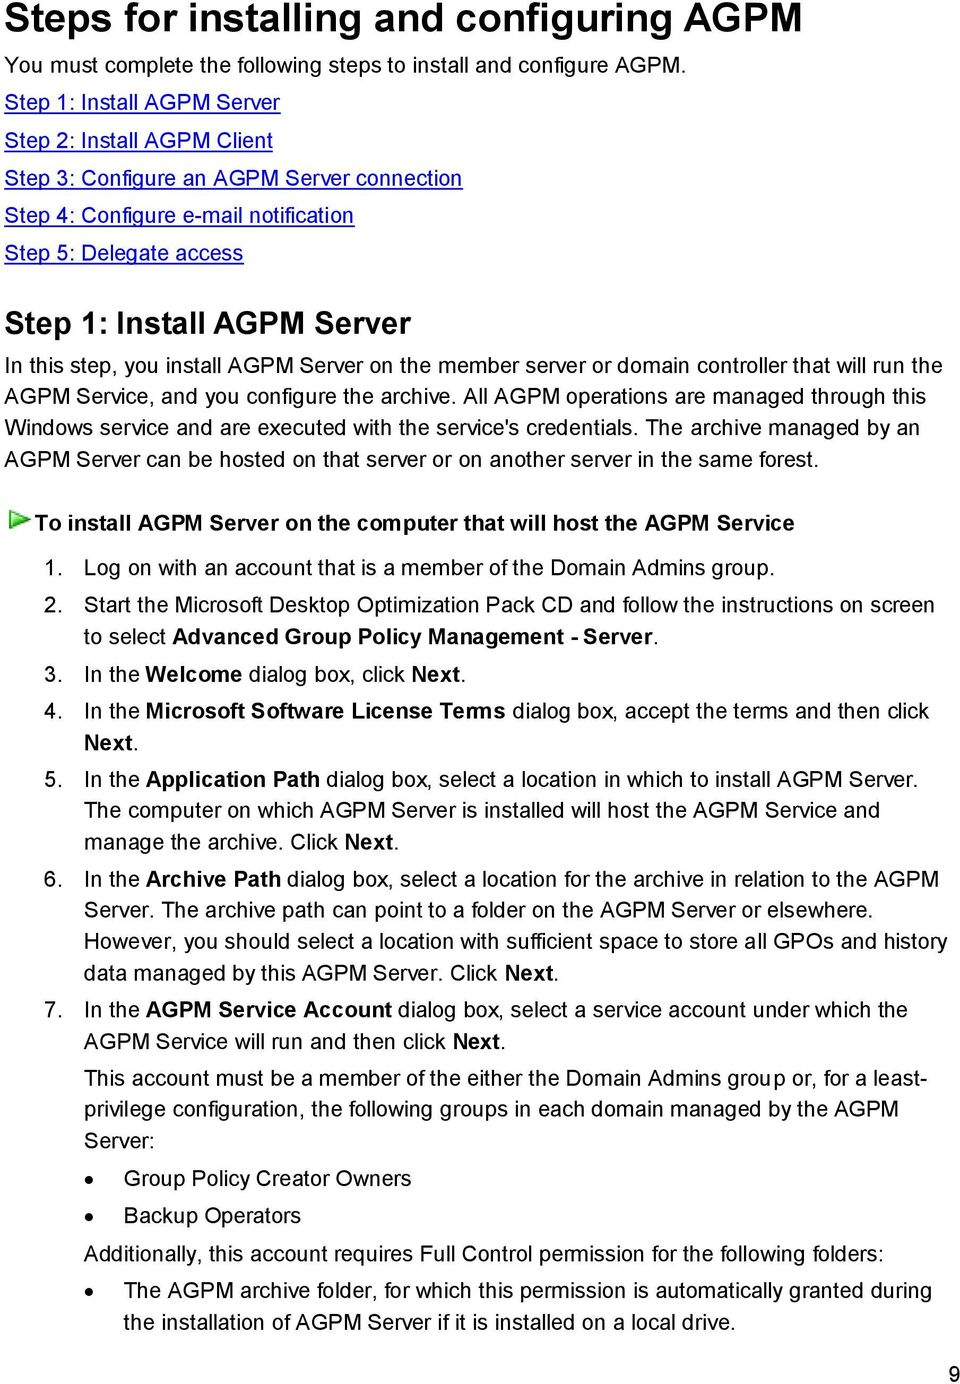 step, you install AGPM Server on the member server or domain controller that will run the AGPM Service, and you configure the archive.